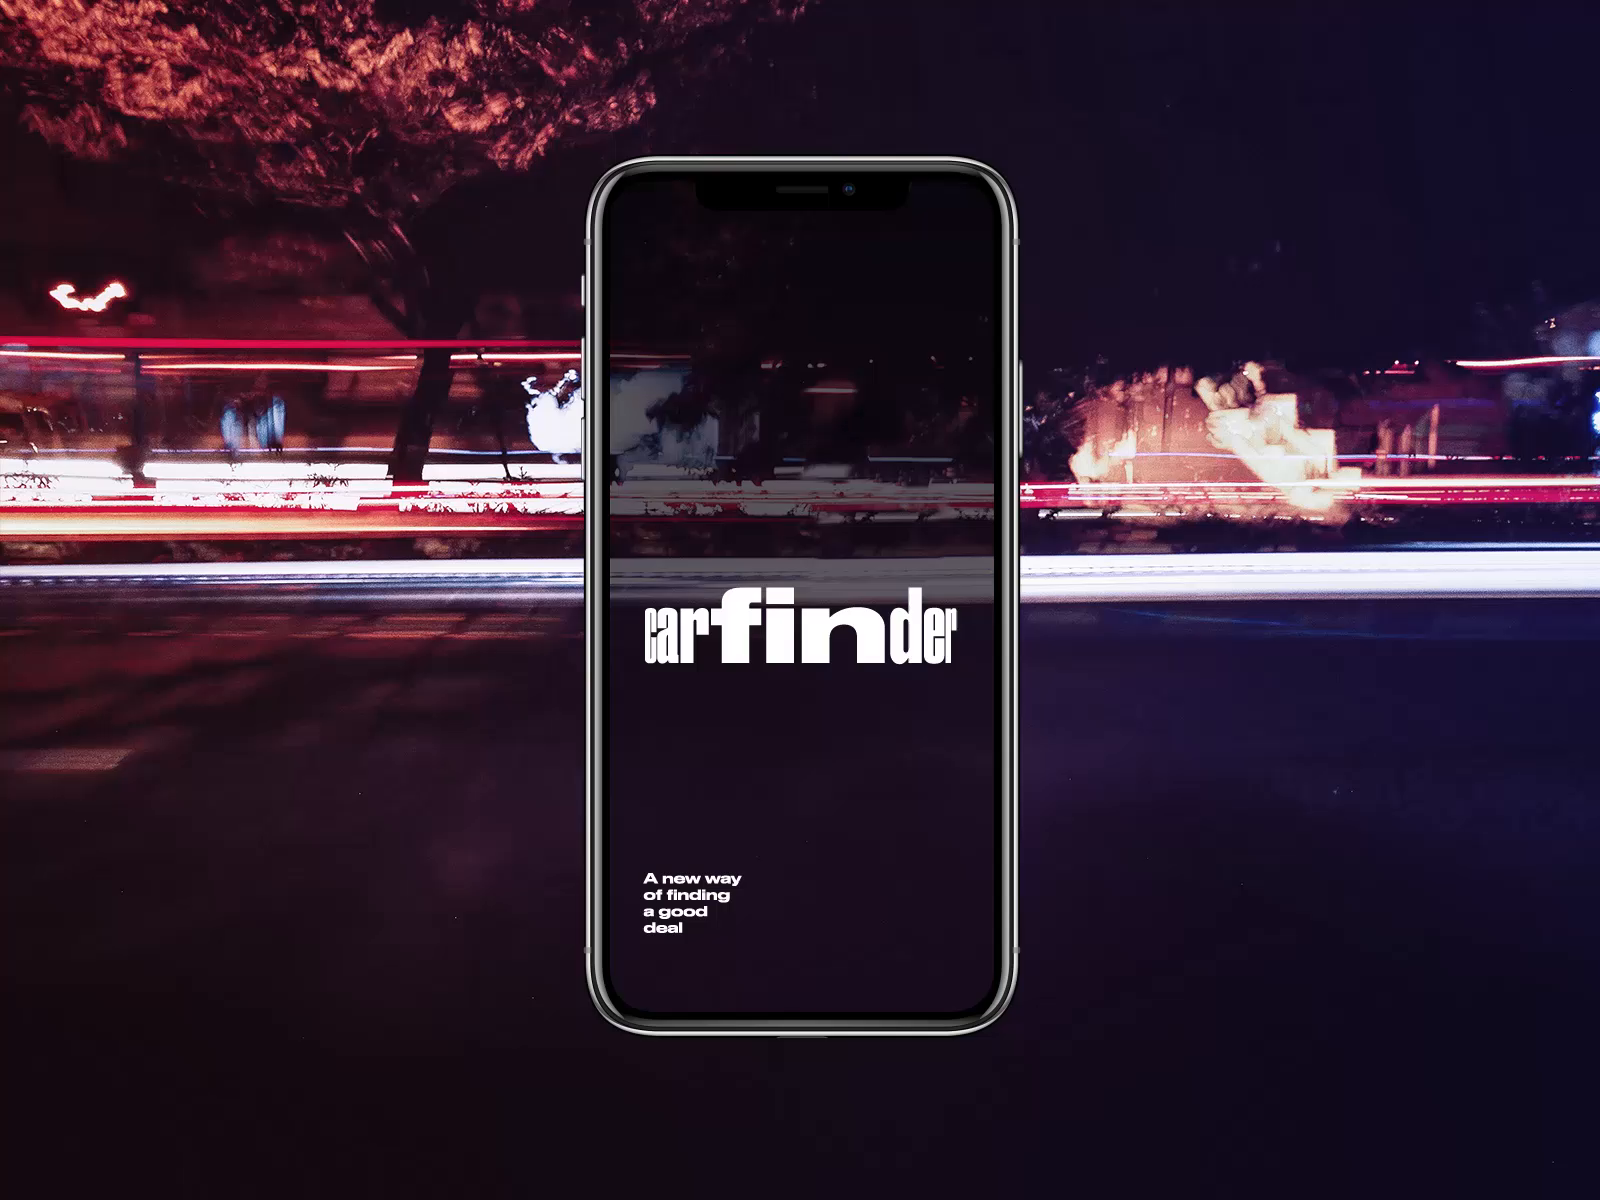 Carfinder app interactions tubik